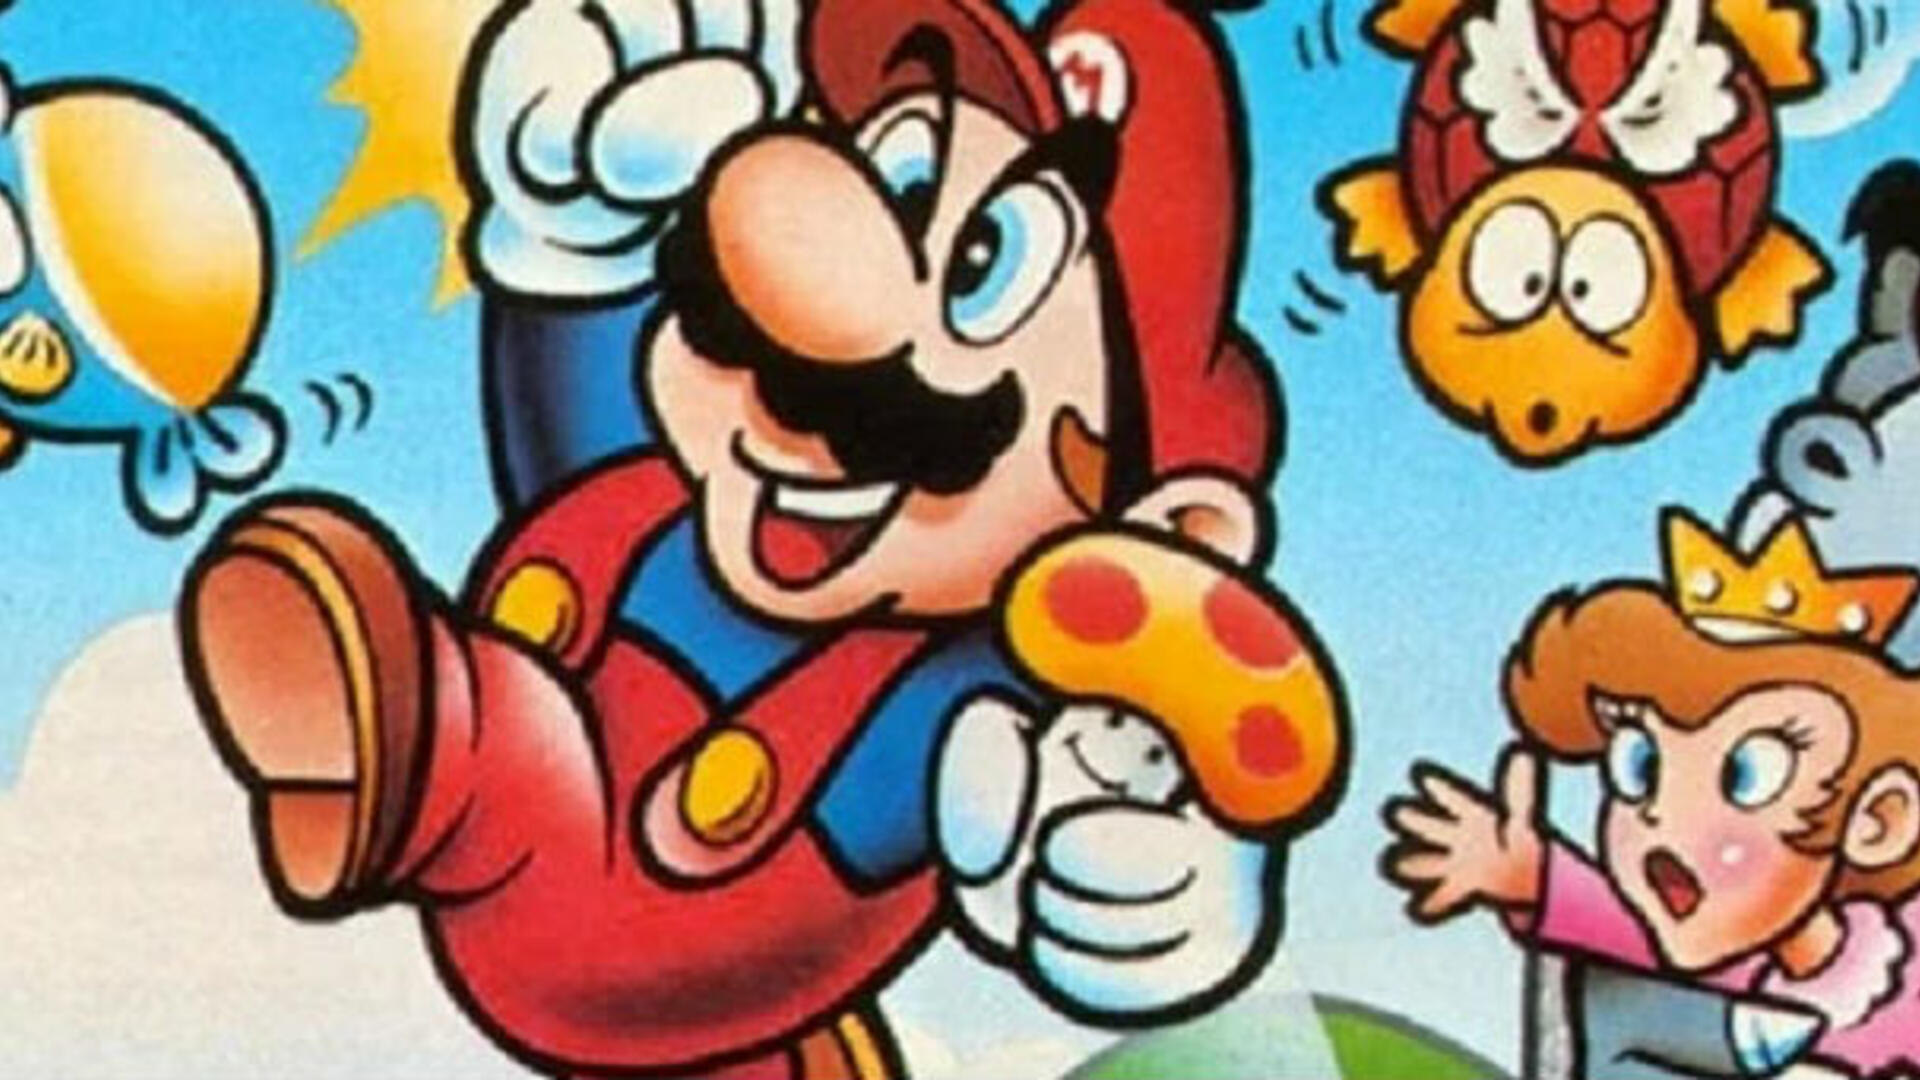 """The """"Peachette"""" Controversy Reminds Me How Dark the Instruction Booklet for Super Mario Bros Is"""